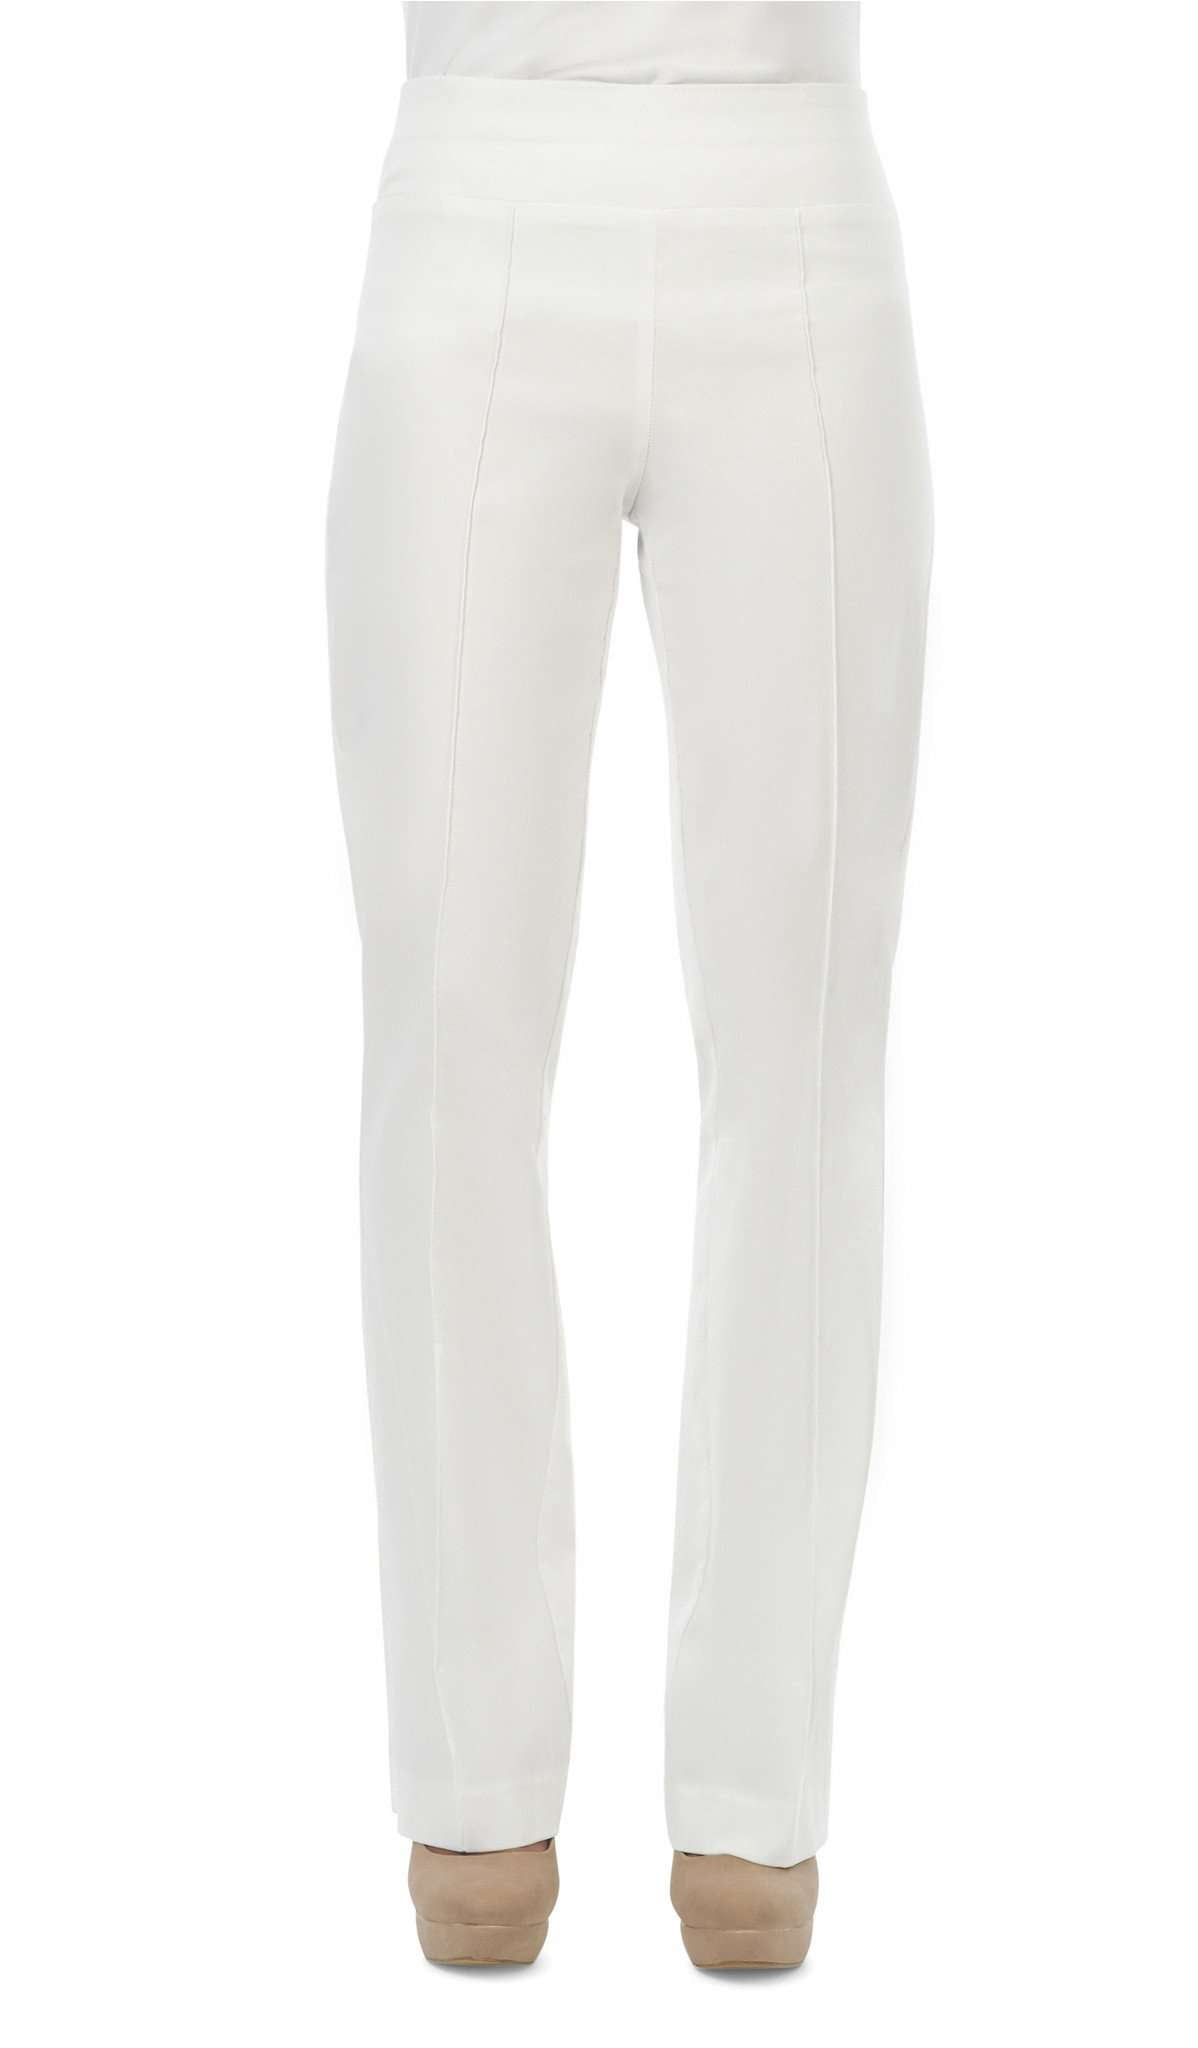 Pants White-Miracle Fit-Quality and Comfort-Made in Canada-Best Seller 10 Years-Enjoy the Quality - Yvonne Marie